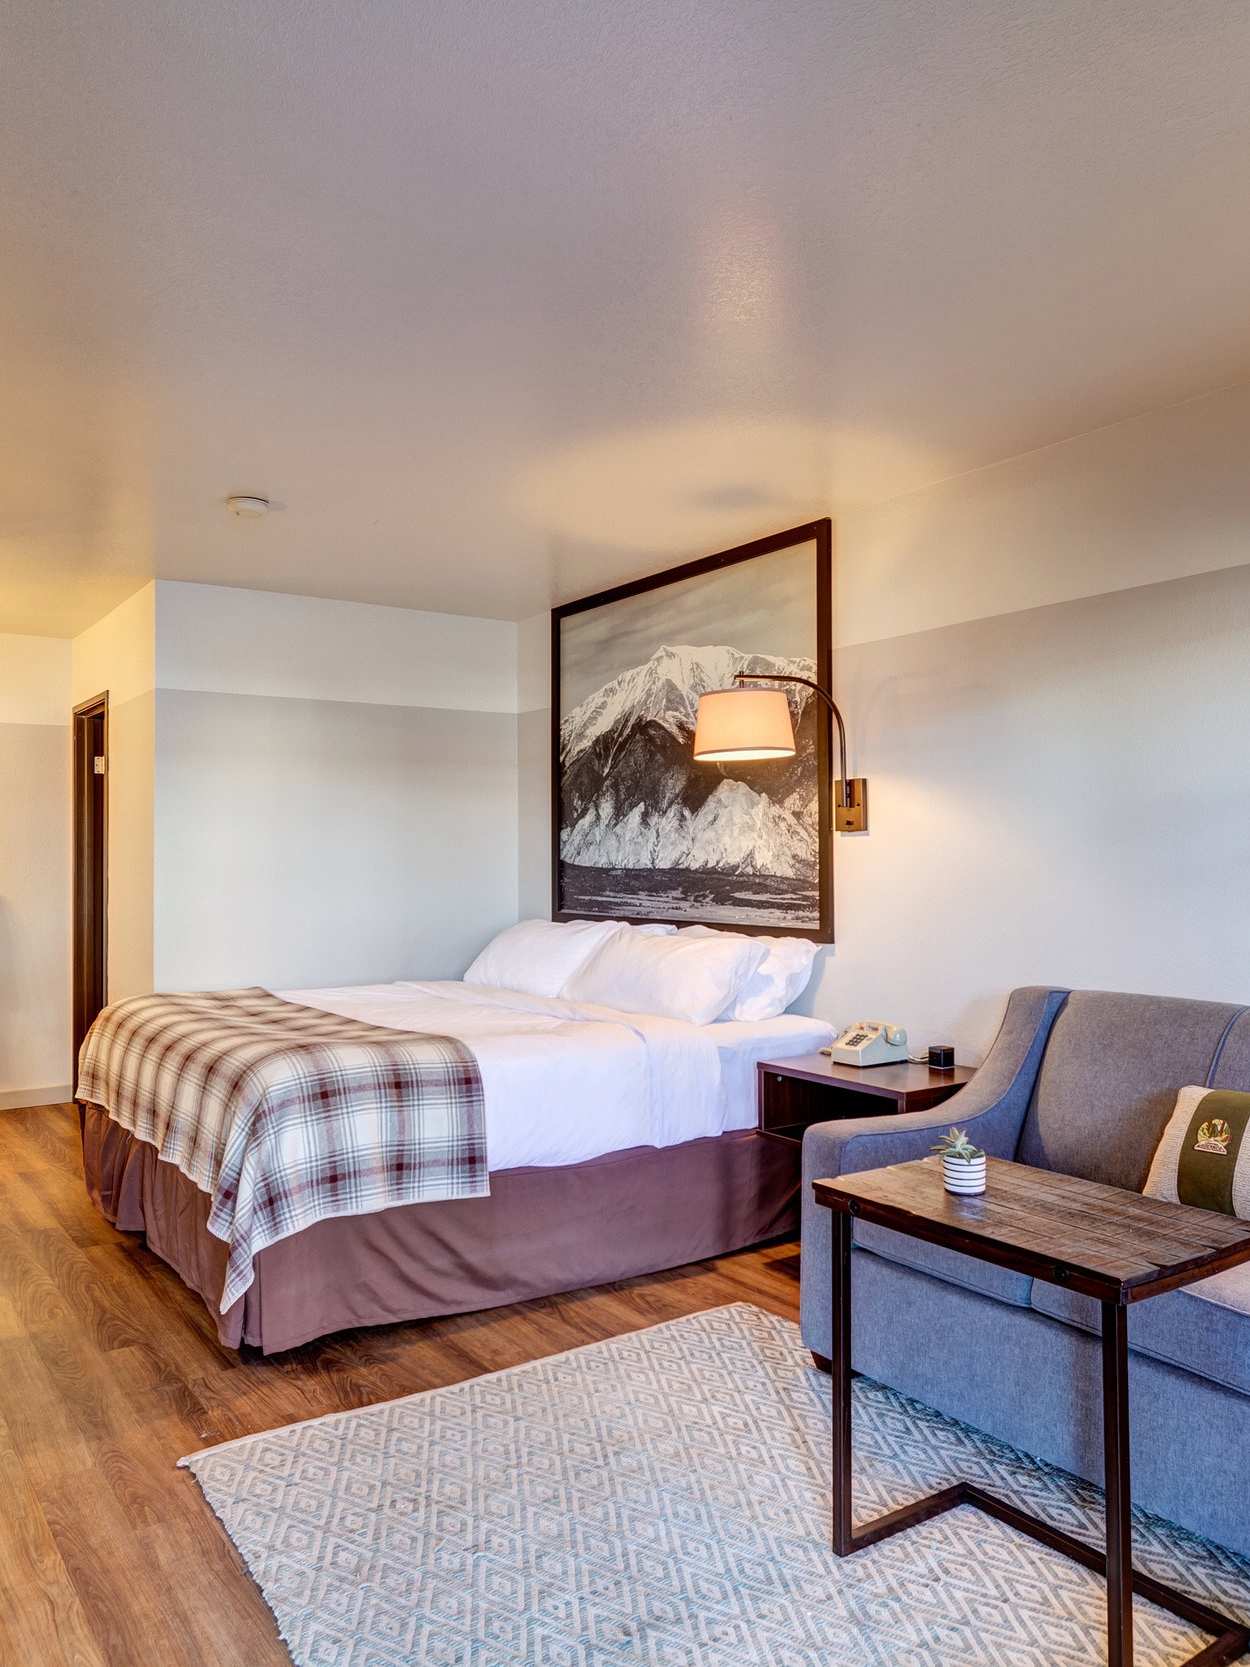 Salida king - Spacious ground floor non-smoking room with a king-sized Simmons Mattress bed and a queen-sized pull out sofa sleeper. Perfect for your romantic getaway or a family vacation.